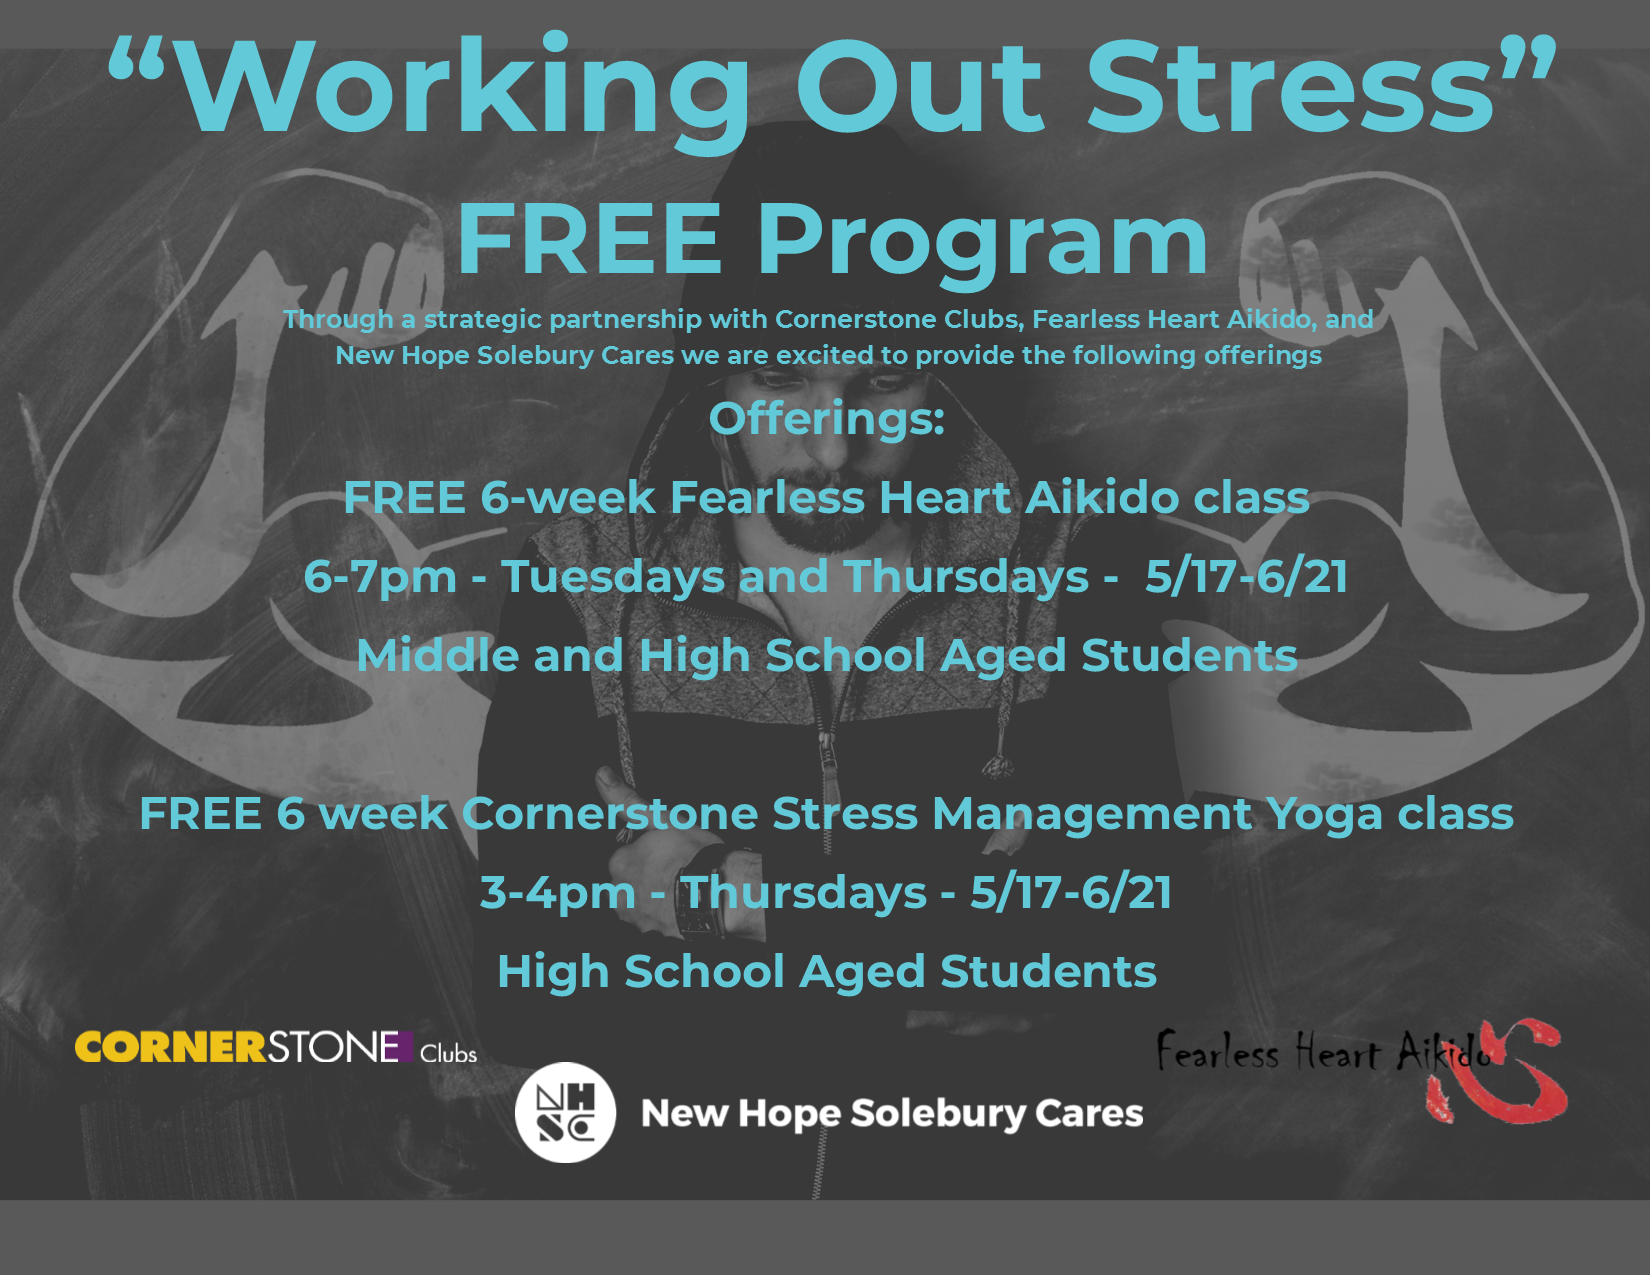 Working Out Stress Flyer.png